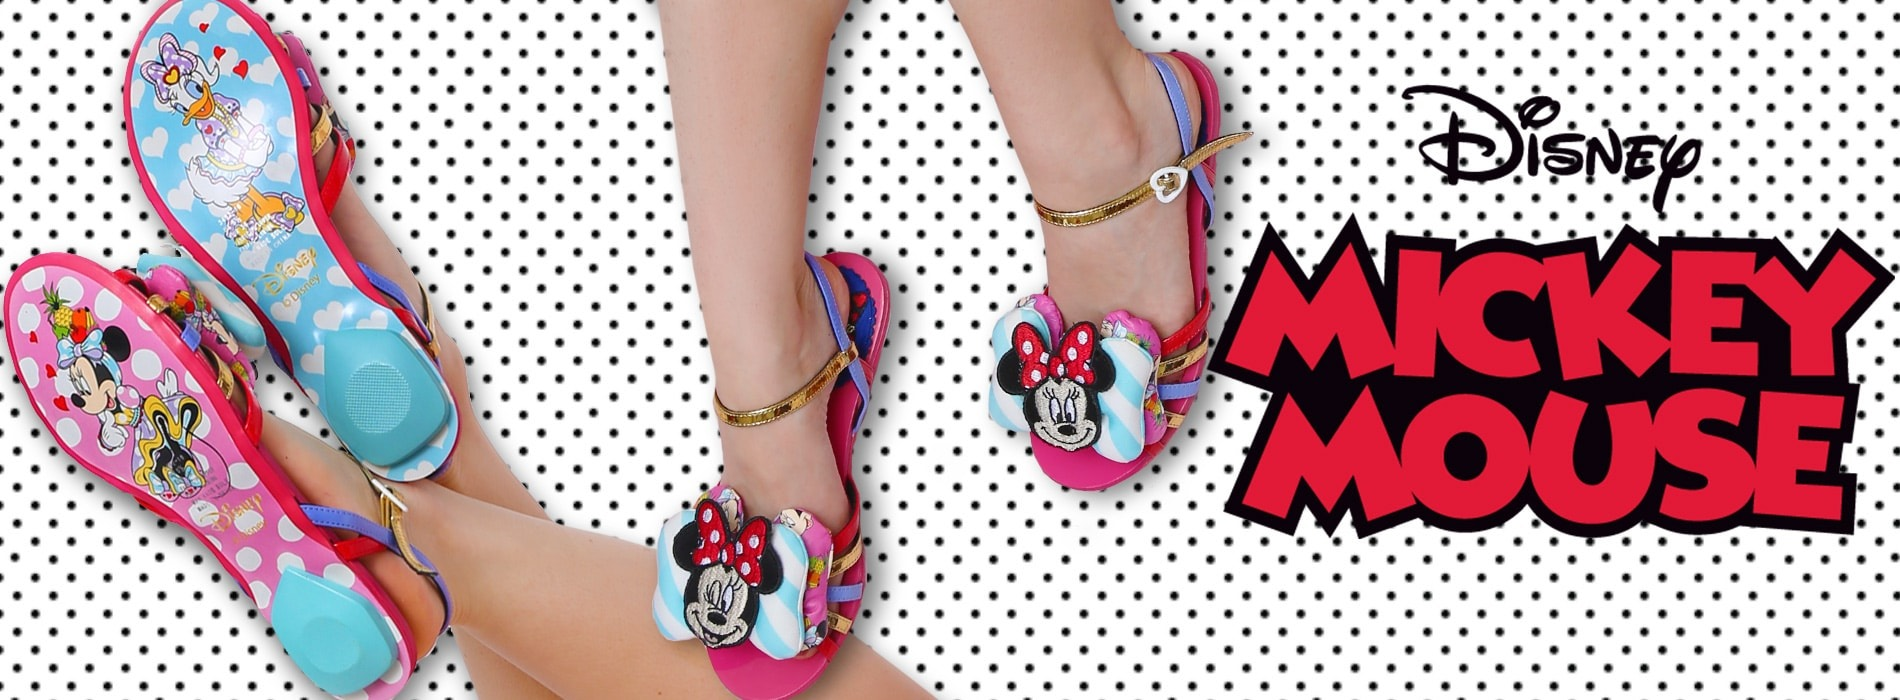 Mickey Mouse and Friends Collection by Irregular Choice | Tiltedsole.com